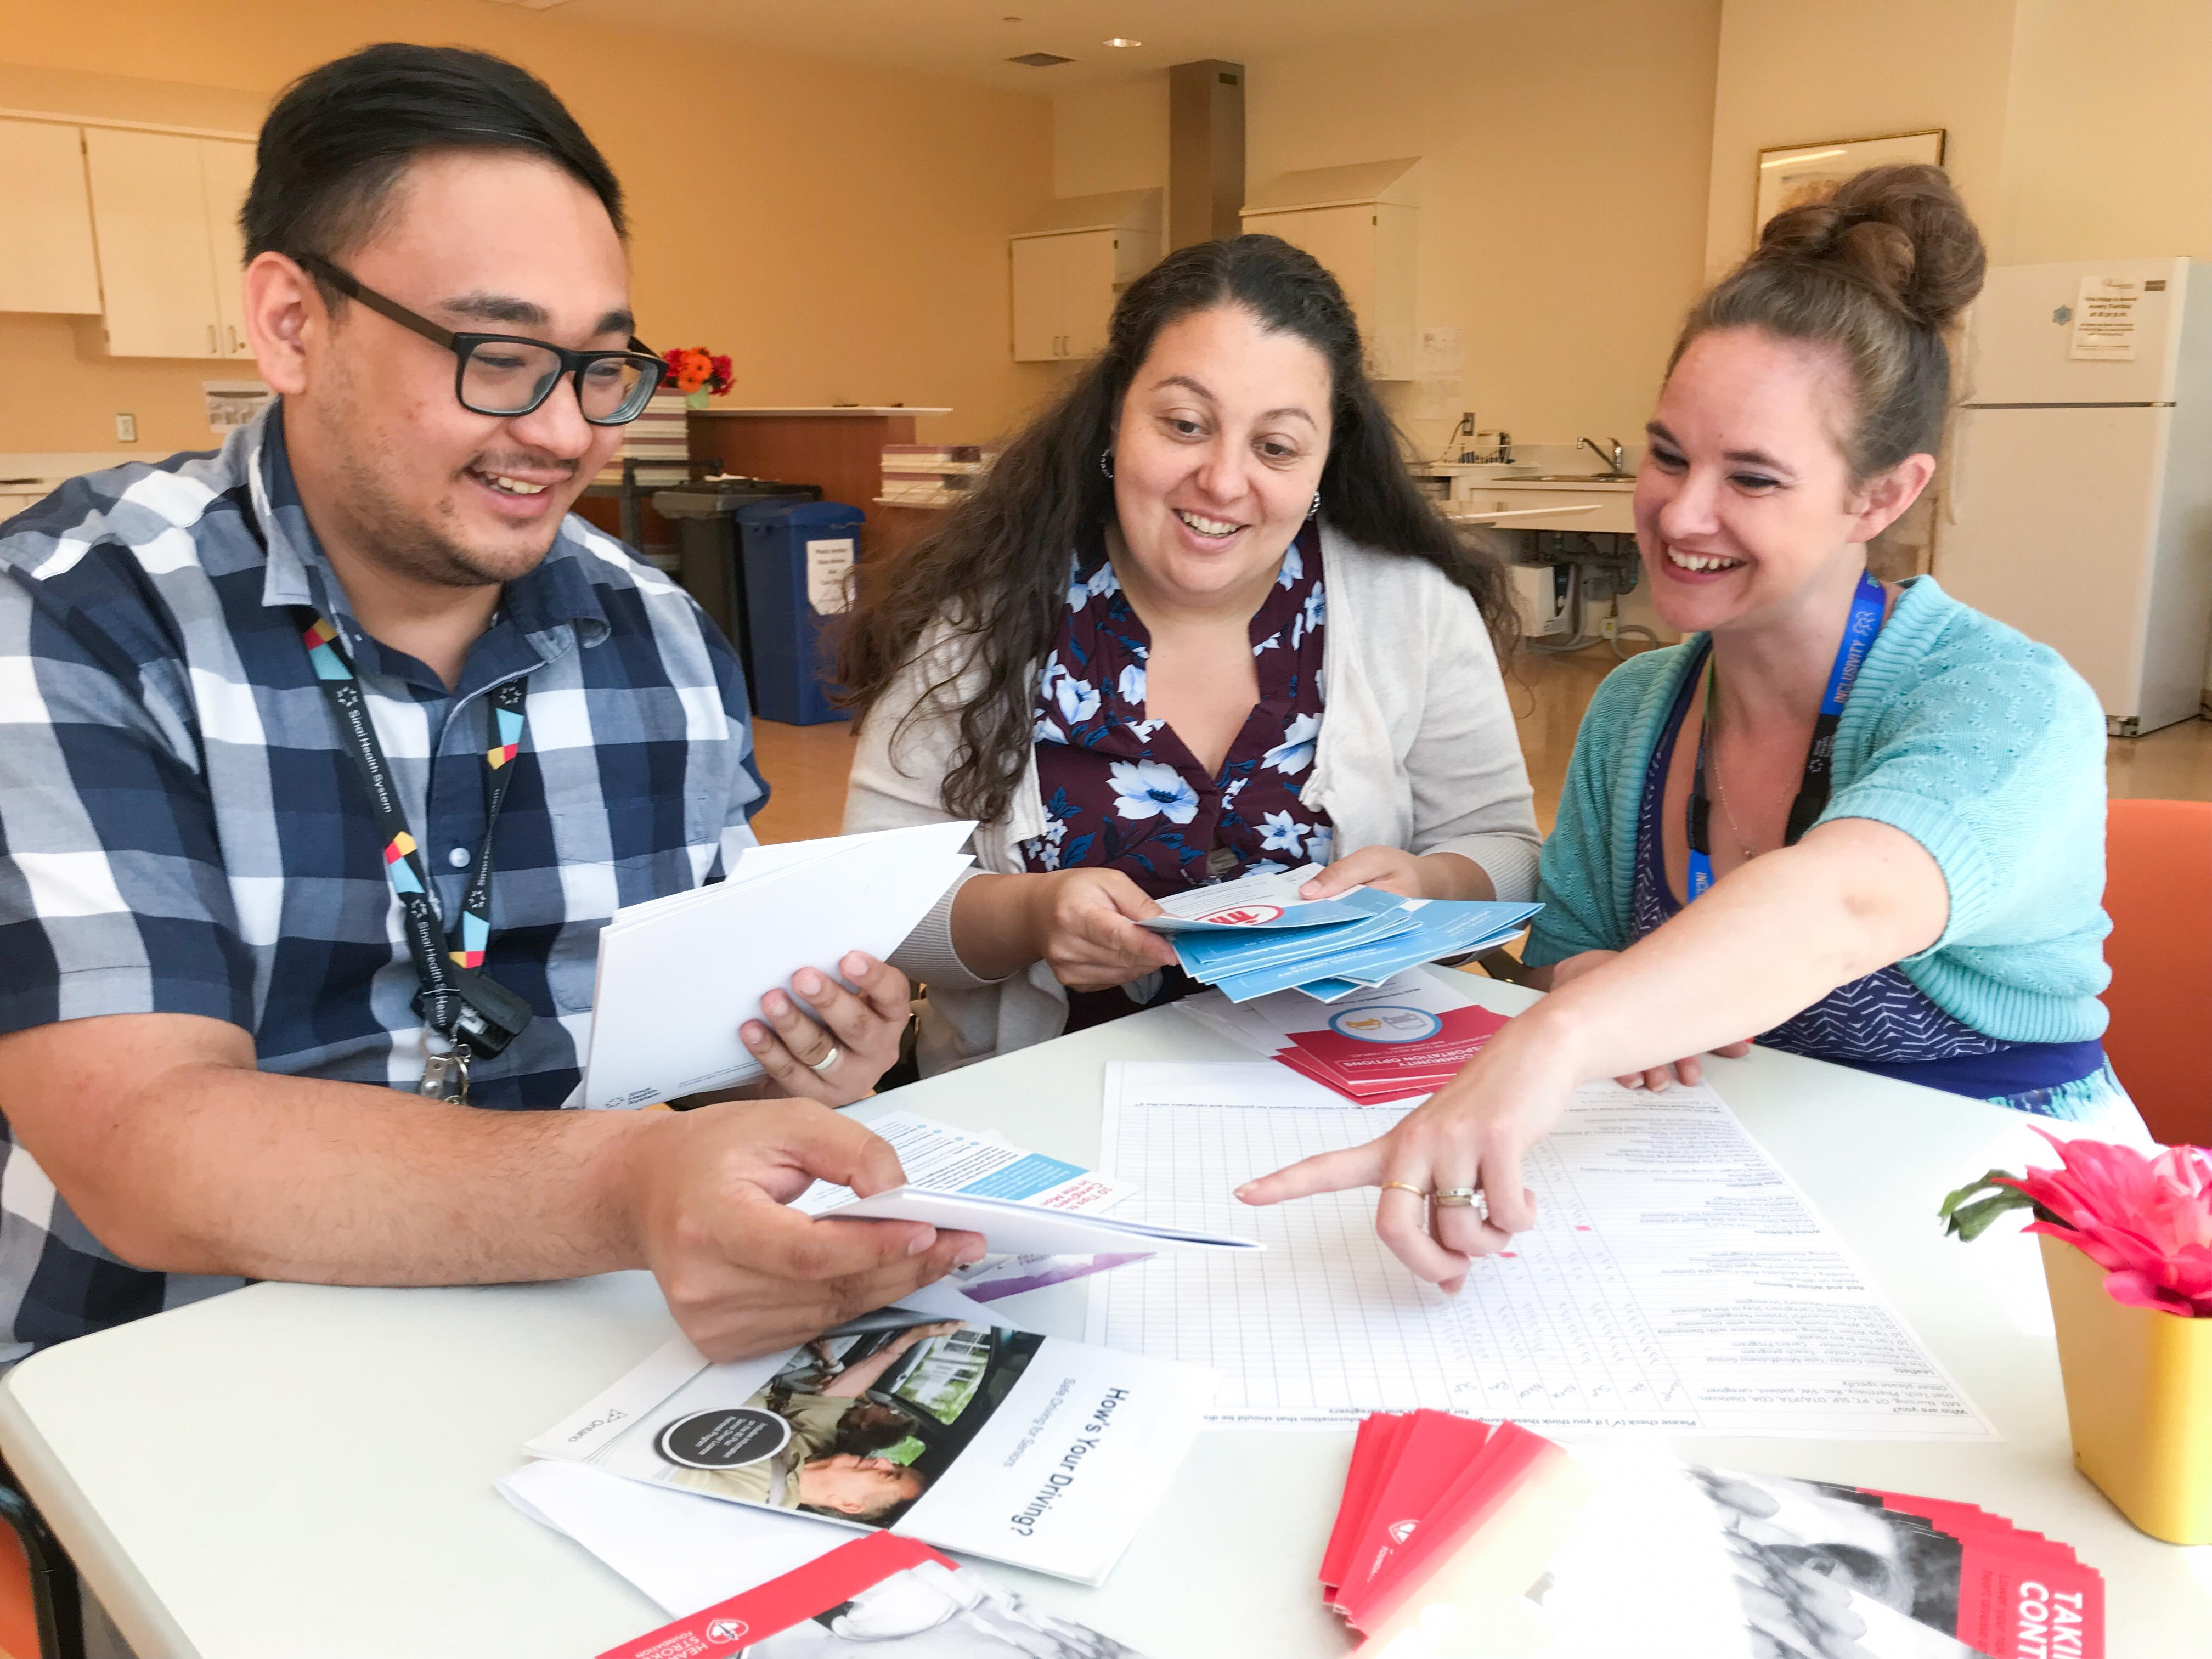 Photo shows three Bridgepoint clinical employees sitting at a table with some patient education brochures spread out. The employees are discussing the brochures